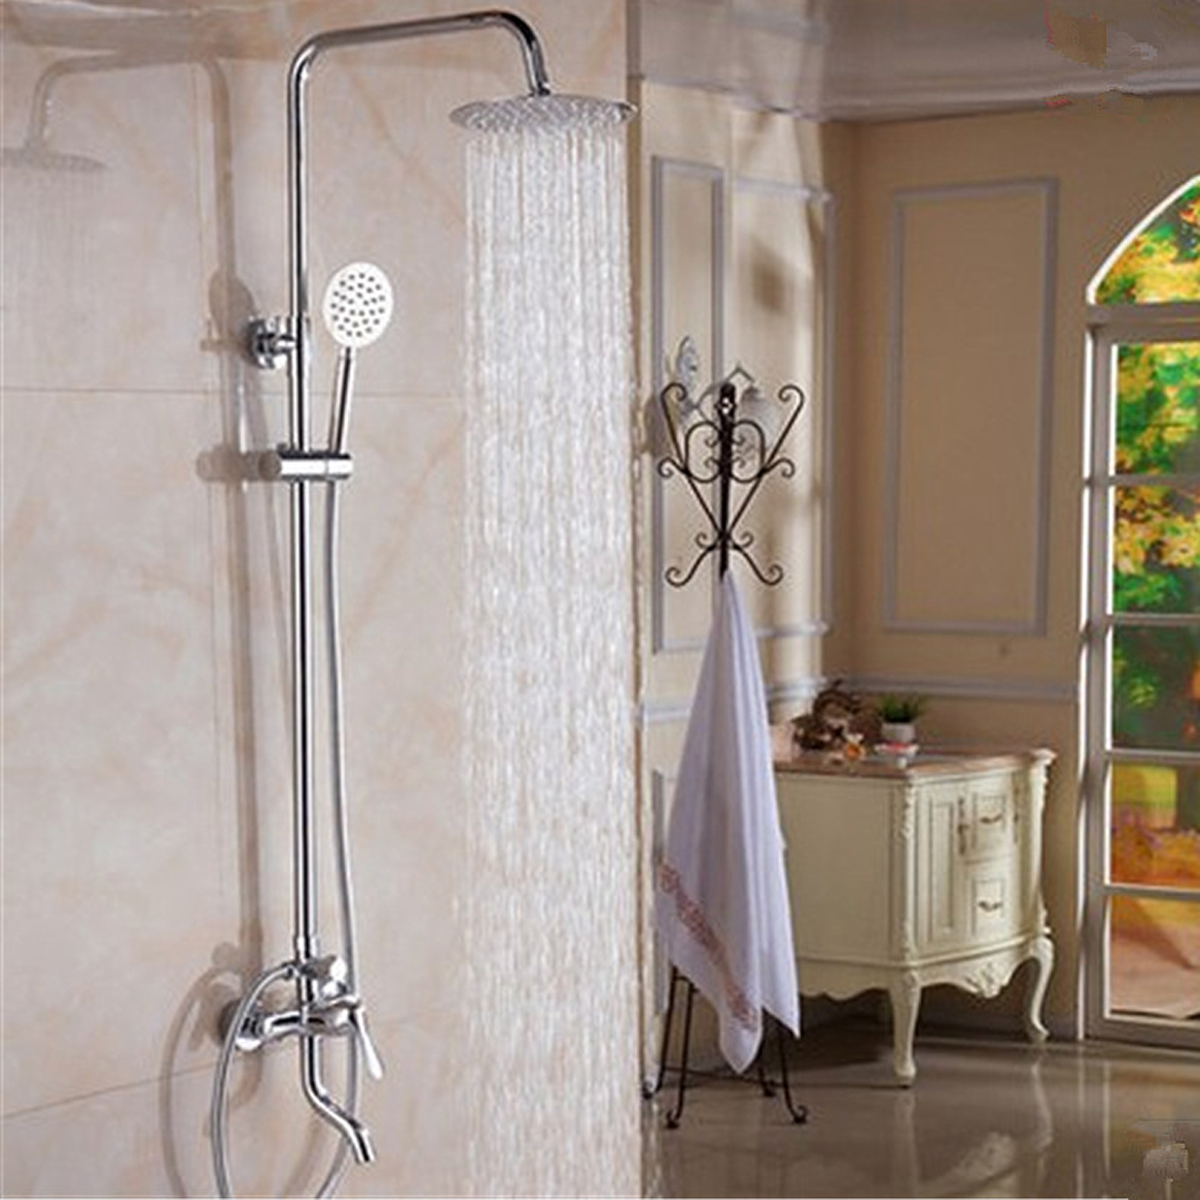 8'' Rainfall Shower Head Faucet Set Chrome Brass Polished Shower Tub Mixer Tap Saving Nozzle Aerator Wall Mounted High Pressure